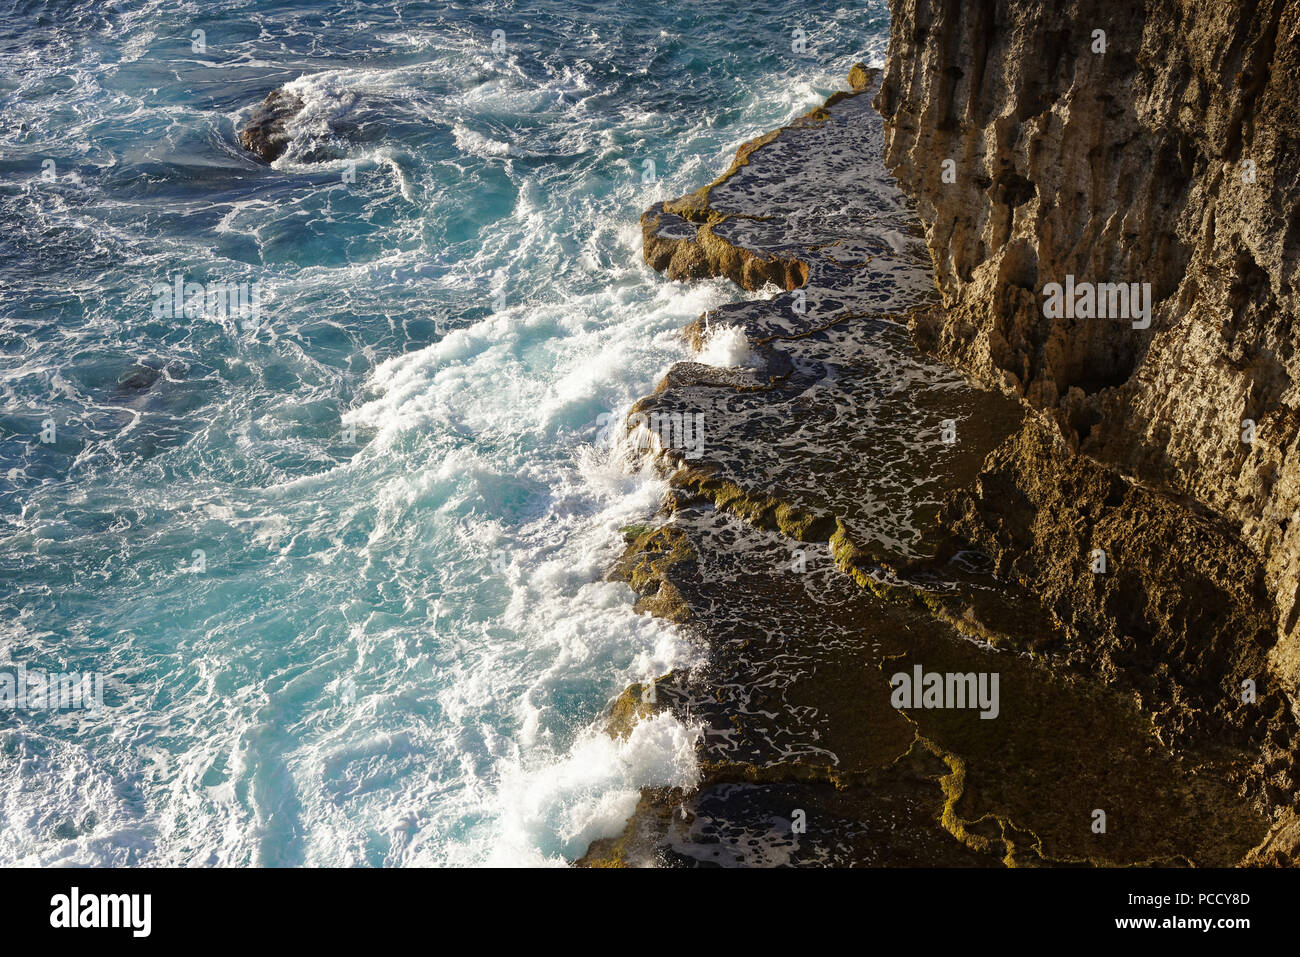 The sea crashes onto rocks at the bottom of a cliff in Tonga - Stock Image